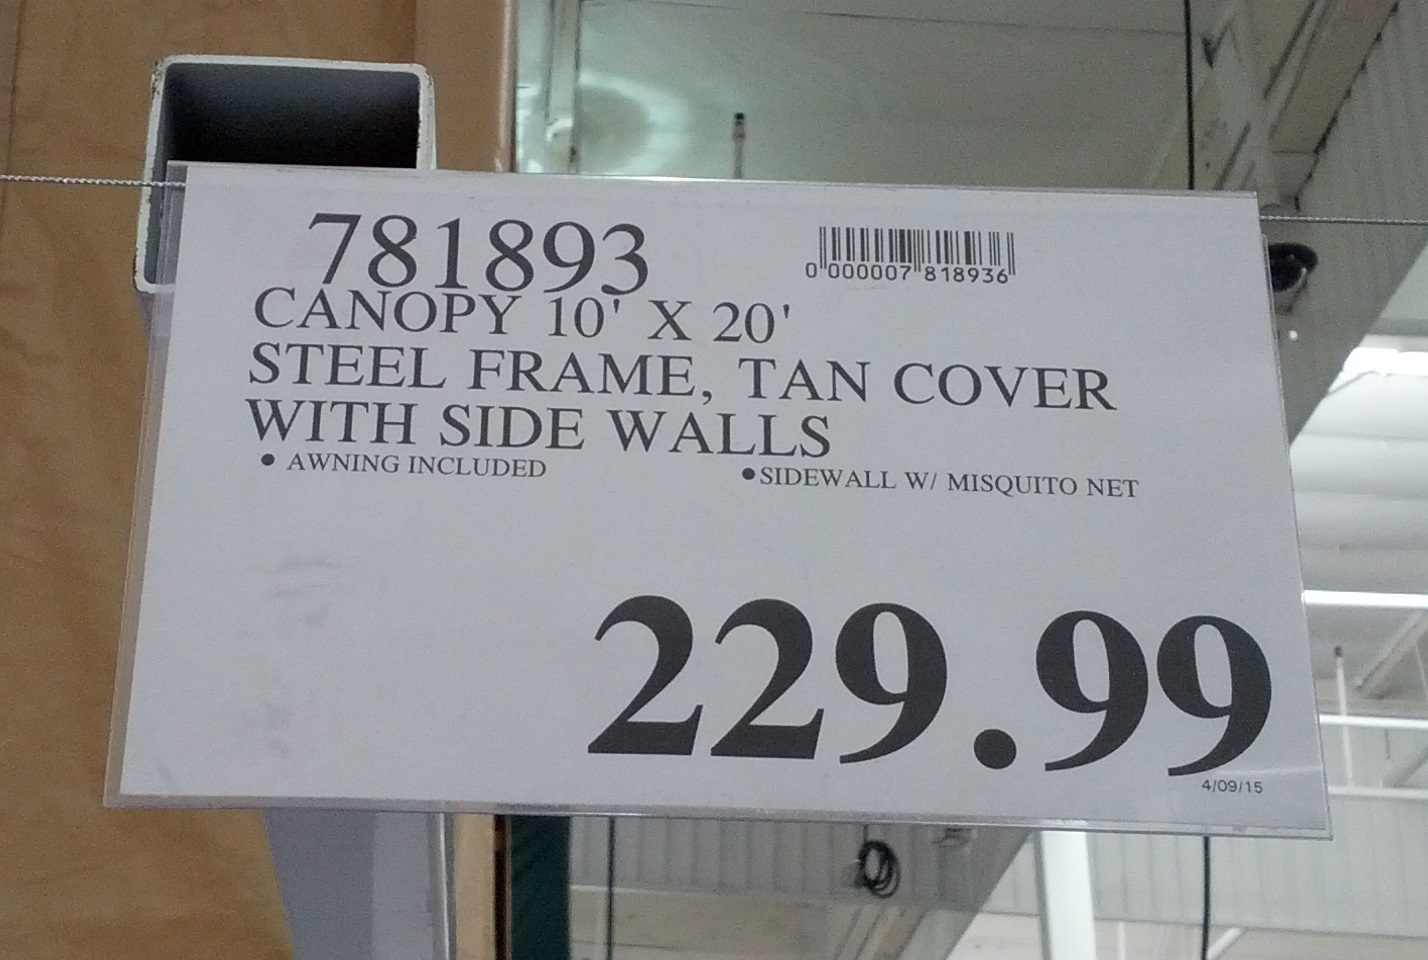 Deal for the Steel Frame Canopy with Side Walls (Tan Cover) at Costco & Steel Frame Canopy with Side Walls (Tan Cover) | Costco Weekender